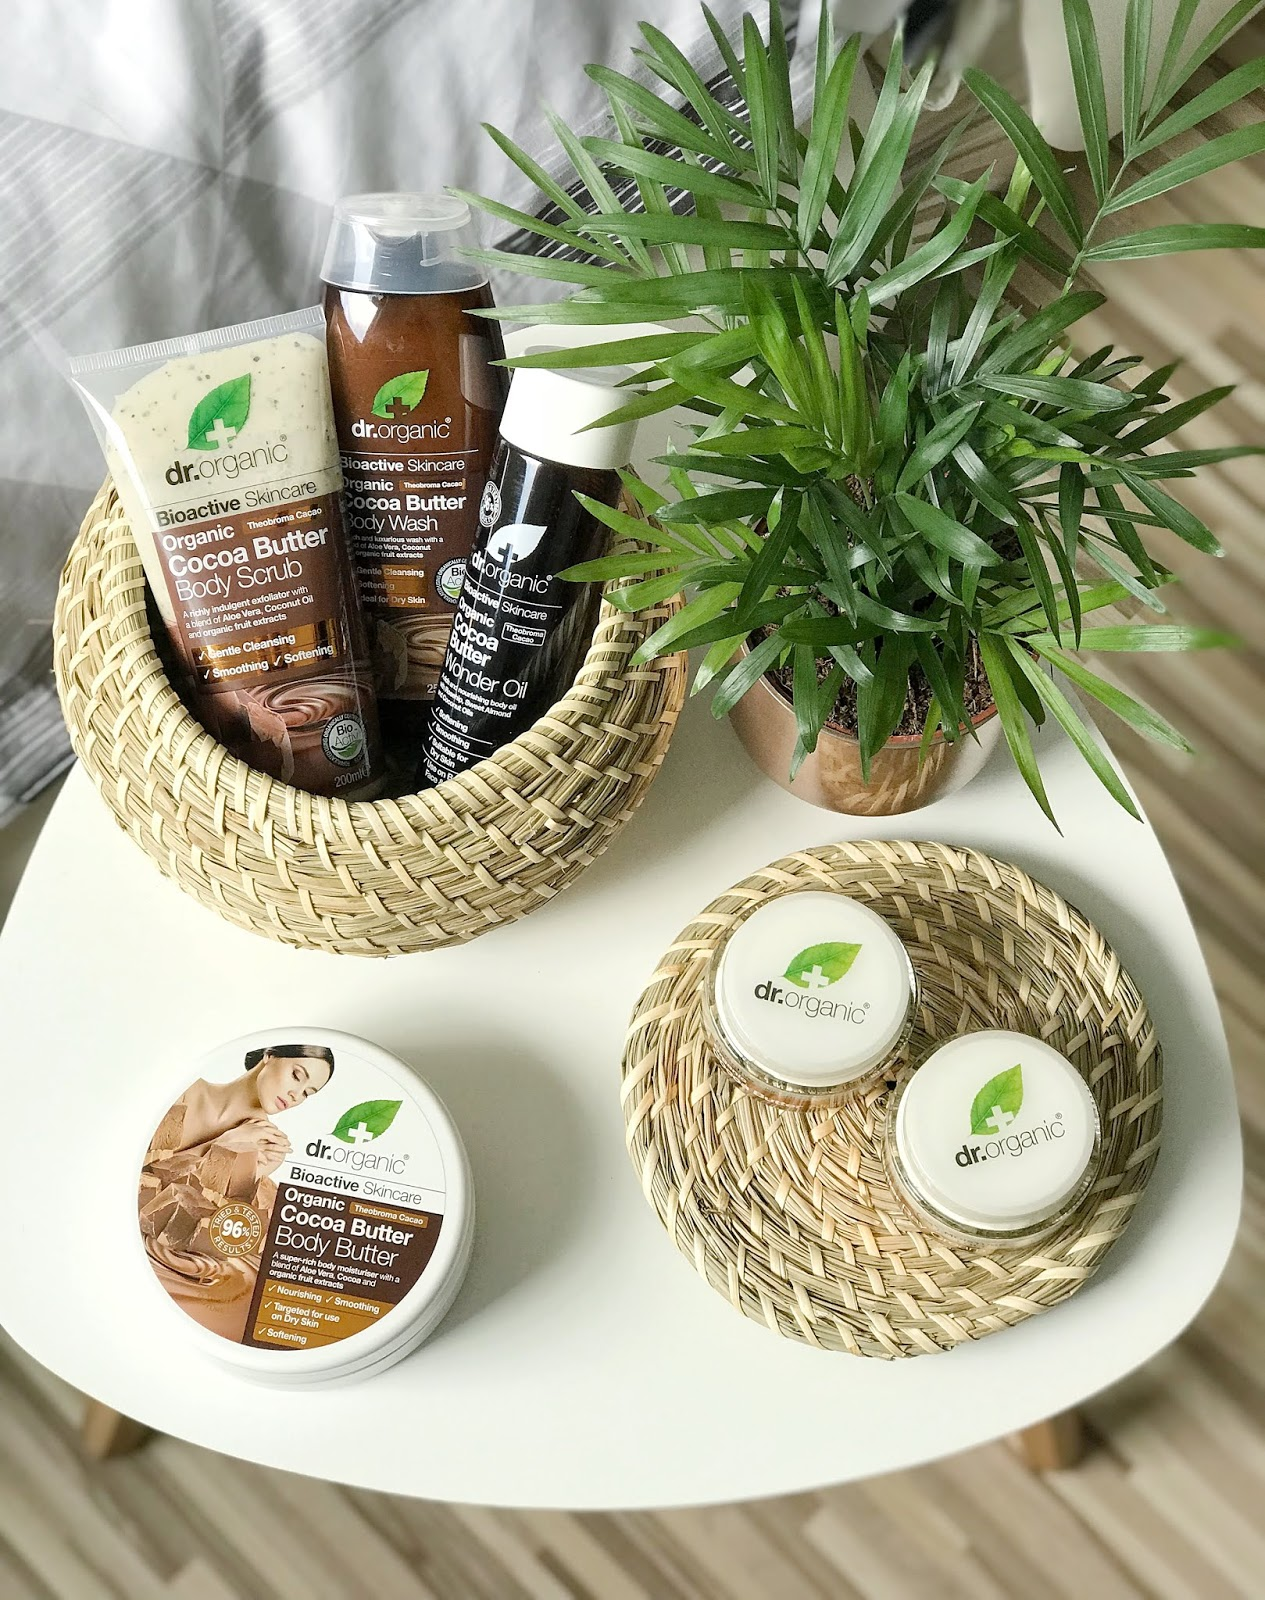 Dr. Organic Organic Cocoa Butter body scrub, wonder oil, body butter, body wash, day and night cream, kakavova linija, čudežno olje